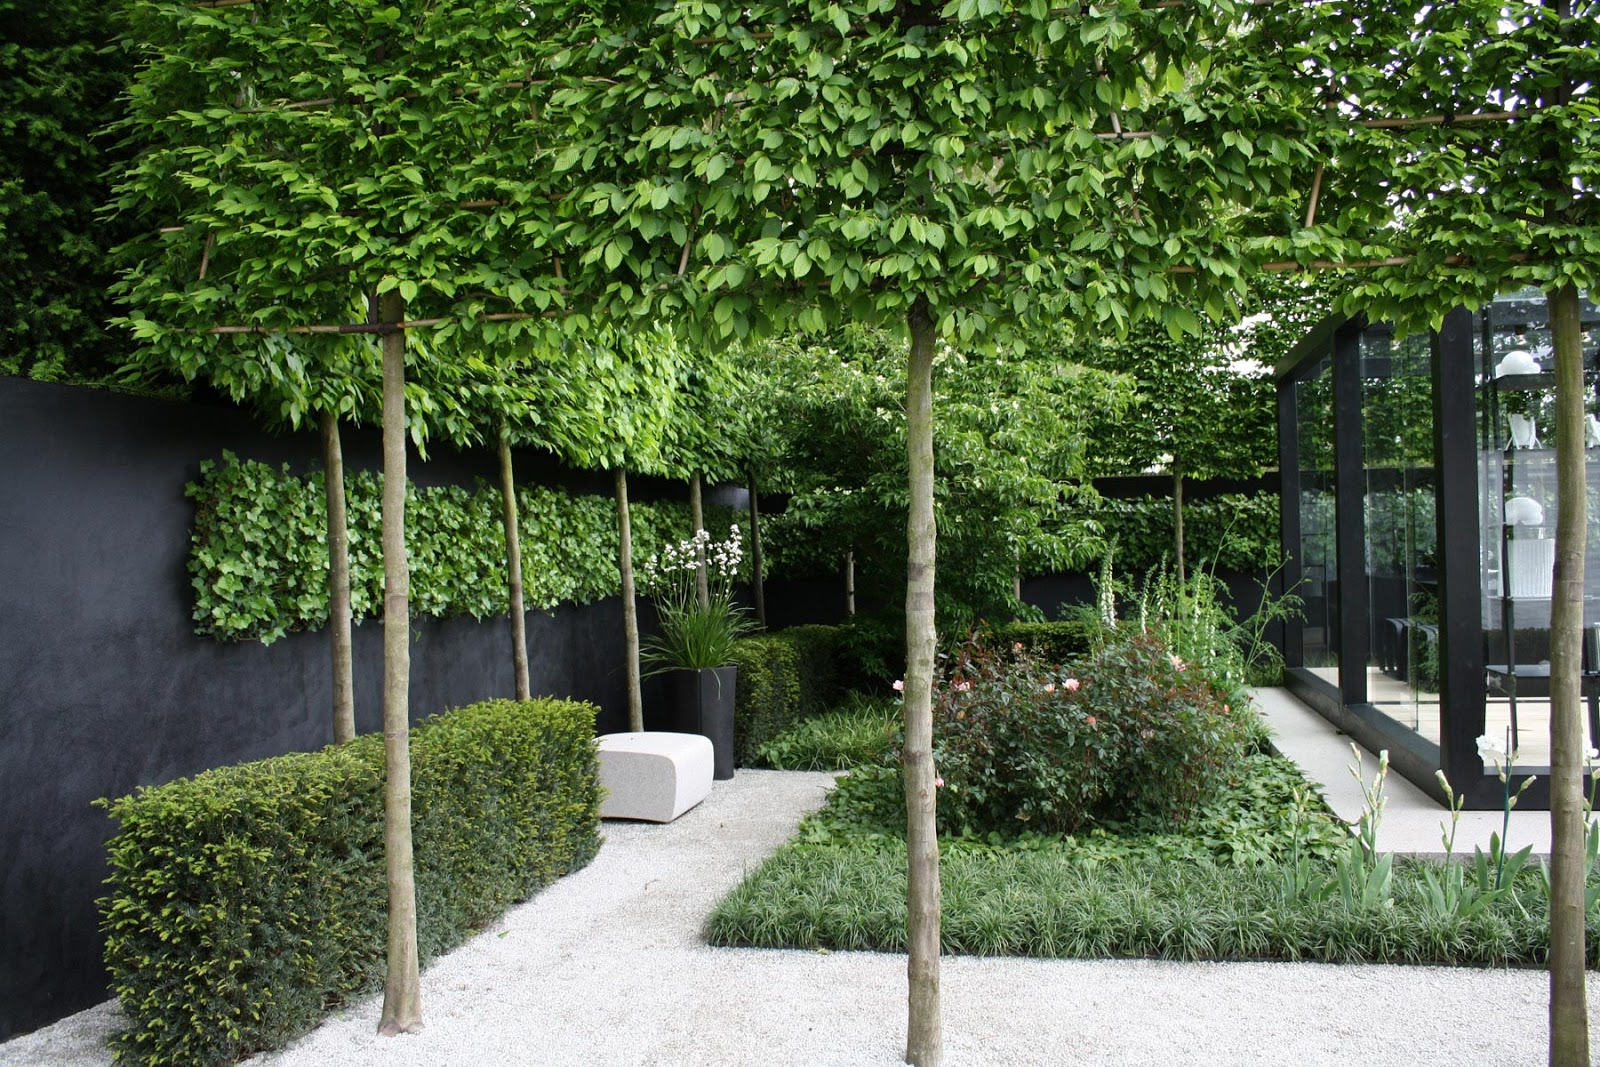 Landscaping Screening Trees : David dangerous pleached trees stilted raised